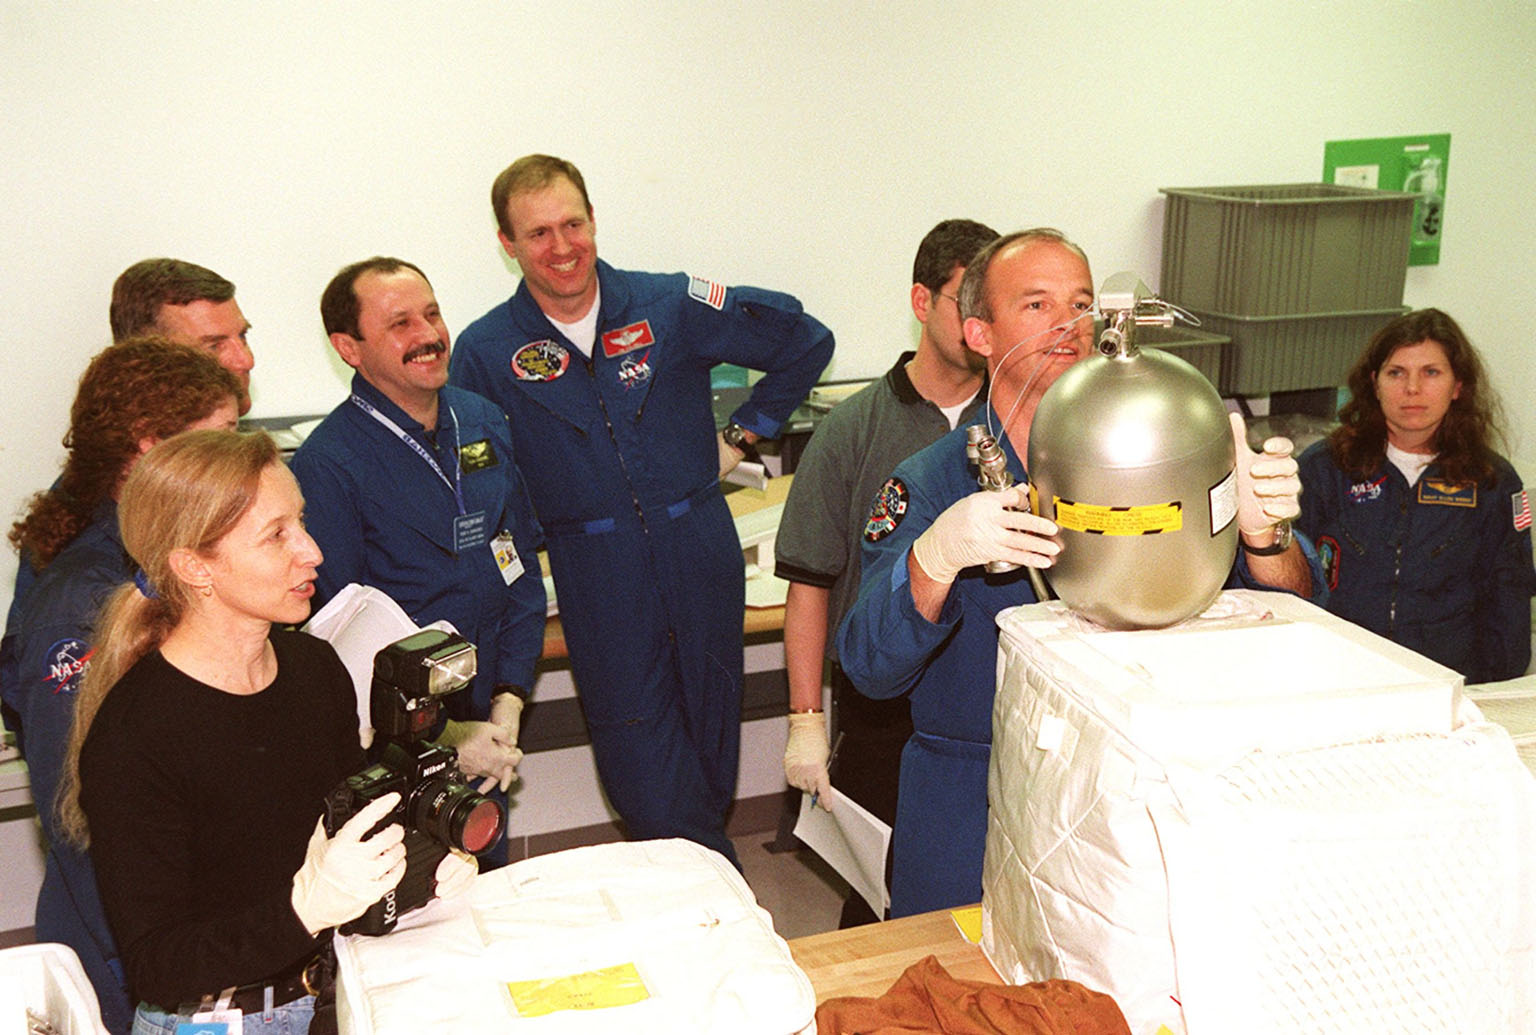 KENNEDY SPACE CENTER, FLA. -- Members of the STS-101 crew share a light moment during Crew Equipment Interface Test (CEIT) activities at SPACEHAB, in Cape Canaveral, Fla. Documenting the occasion is astronaut Marsha Ivins (far left, with camera). Standing behind her (left to right) are Mission Specialists Susan Helms, James Voss and Yuri Usachev; Commander James Halsell; and Mission Specialists Jeffrey Williams (holding tank) and Mary Ellen Weber. During a CEIT, a Shuttle crew becomes familiar with some of the equipment they will be working with on their mission. The STS-101 crew will be responsible for preparing the Space Station for the arrival of the Zvezda Service Module, expected to be launched by Russia in July 2000. Also, the crew will conduct one space walk to perform maintenance on the Space Station and deliver logistics and supplies. This will be the third assembly flight for the Space Station. STS-101 is scheduled to launch no earlier than April 13 from Launch Pad 39A